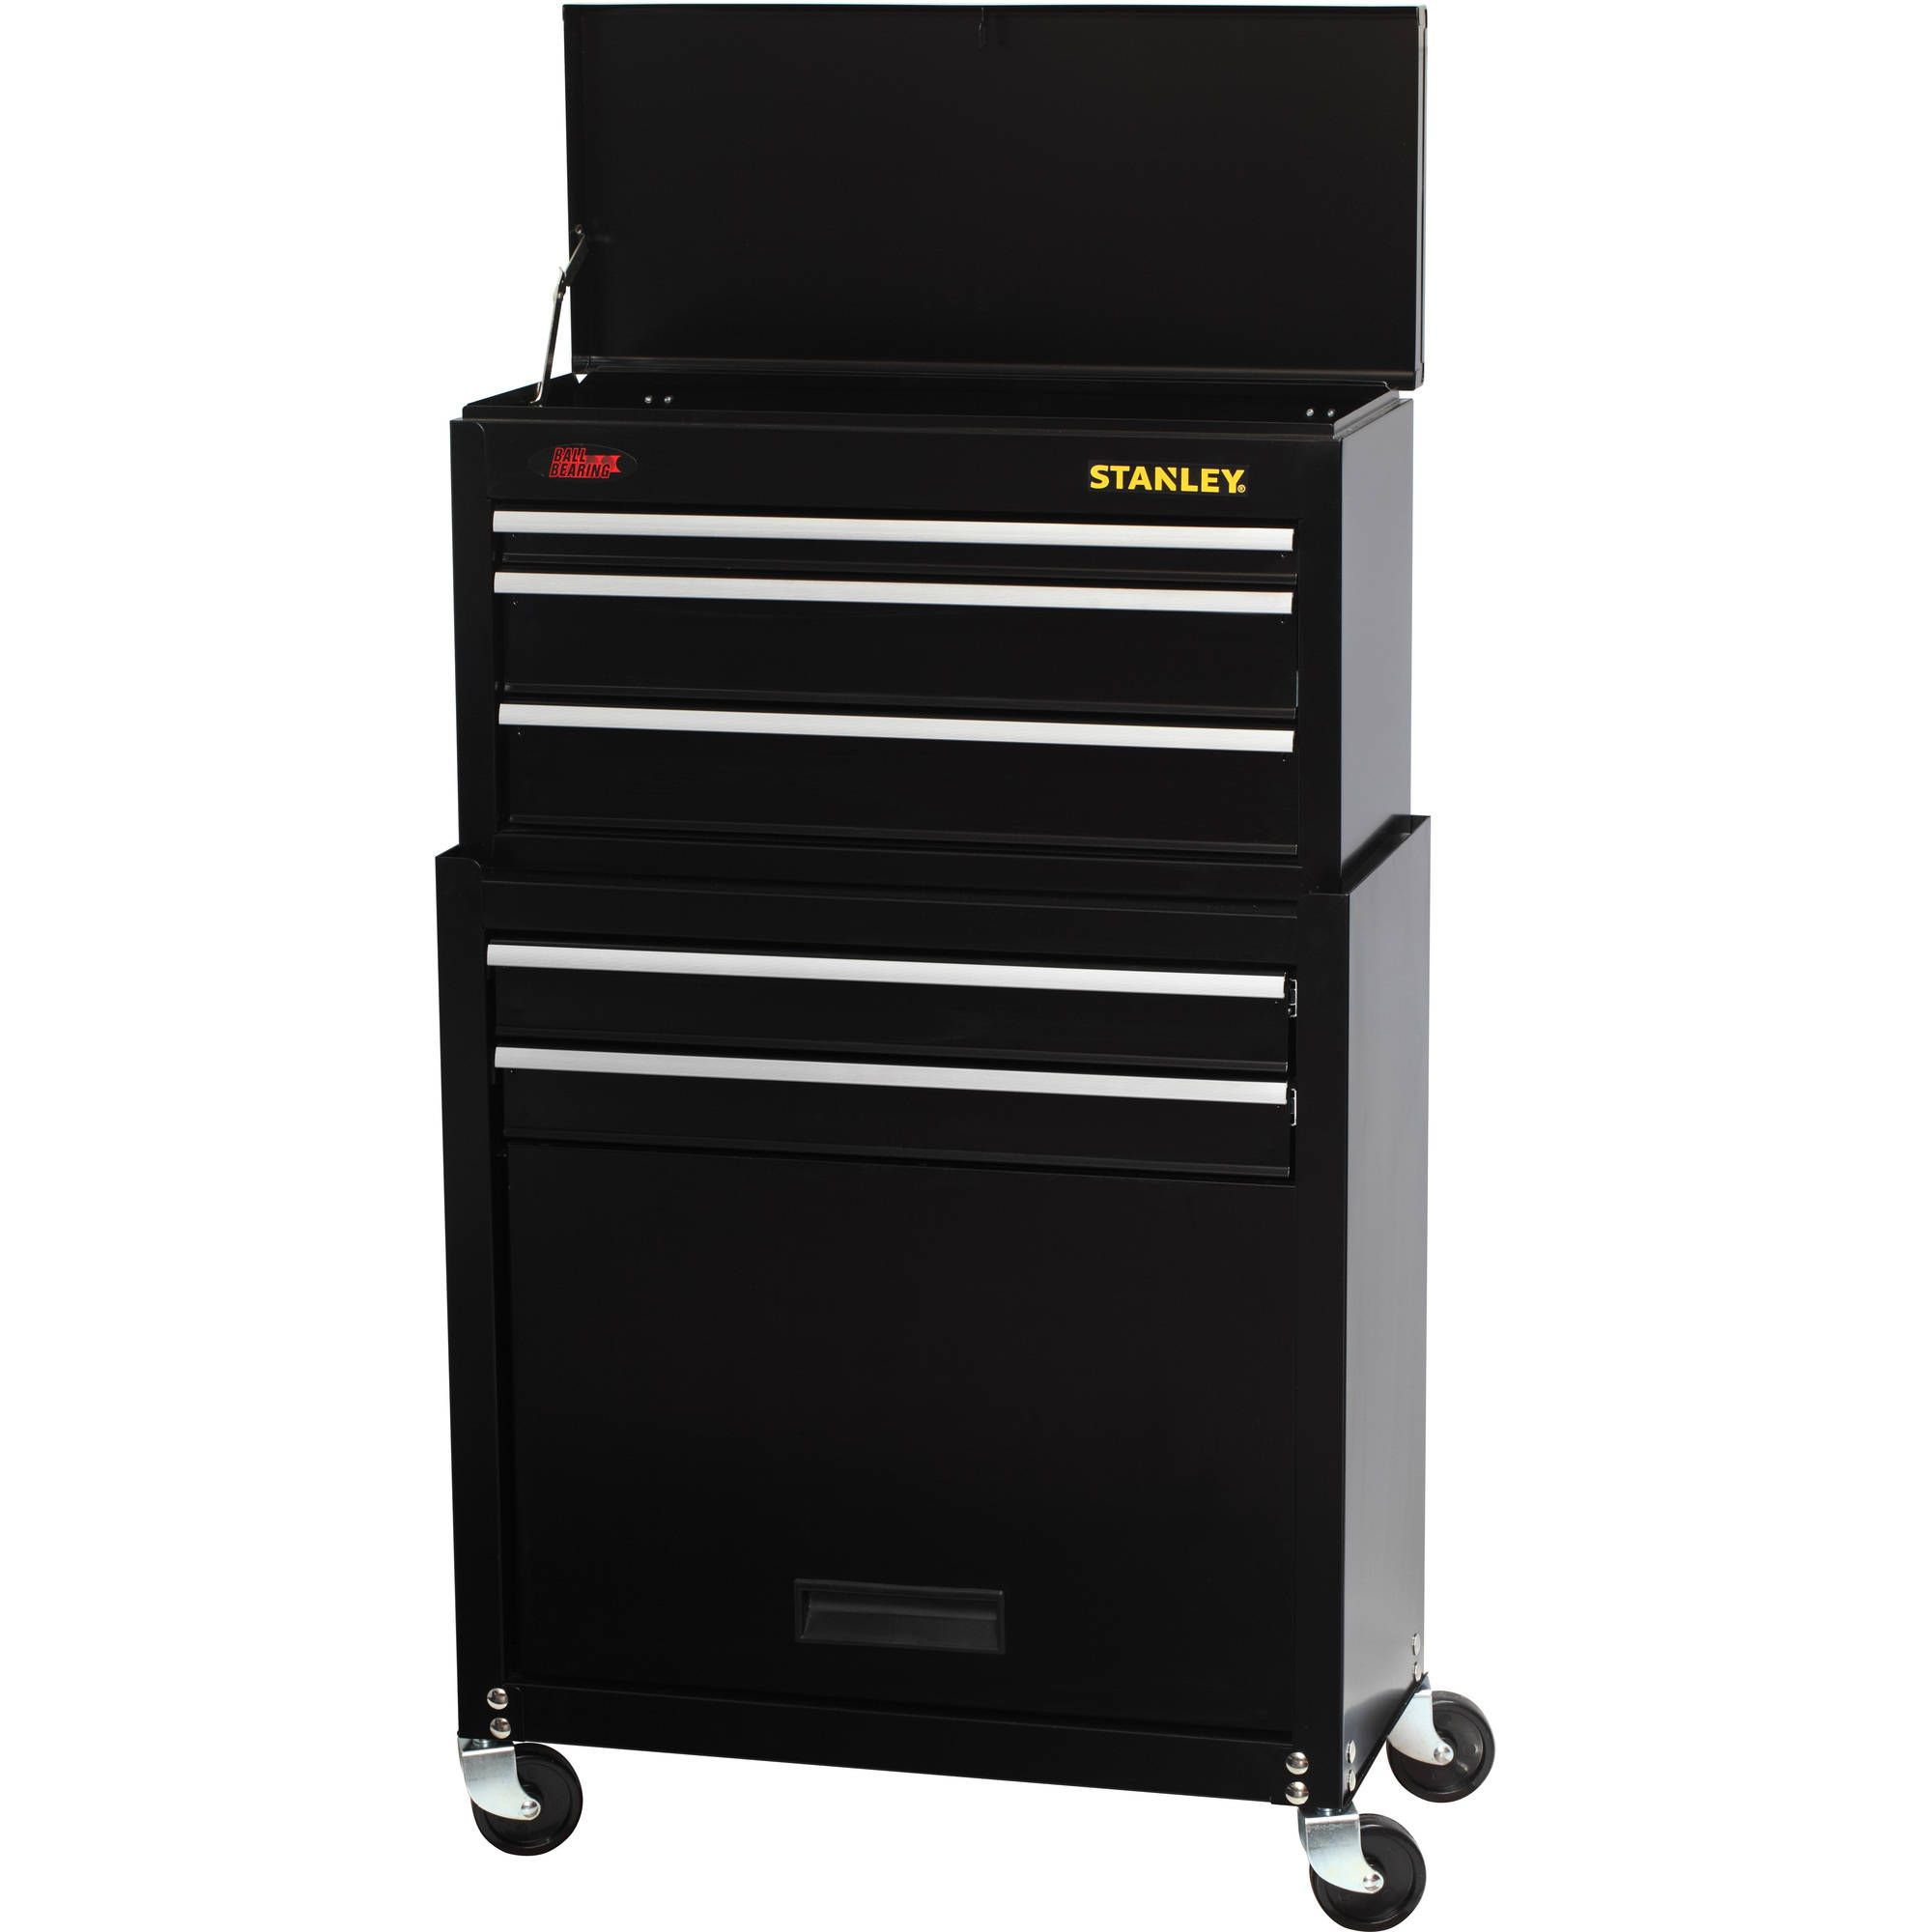 Stanley Stmt74898 5 Drawer Rolling Tool Chest With Bonus 68 Piece Mechanics Tools Set For 90 Tool Chest Tool Storage Tool Box Organization